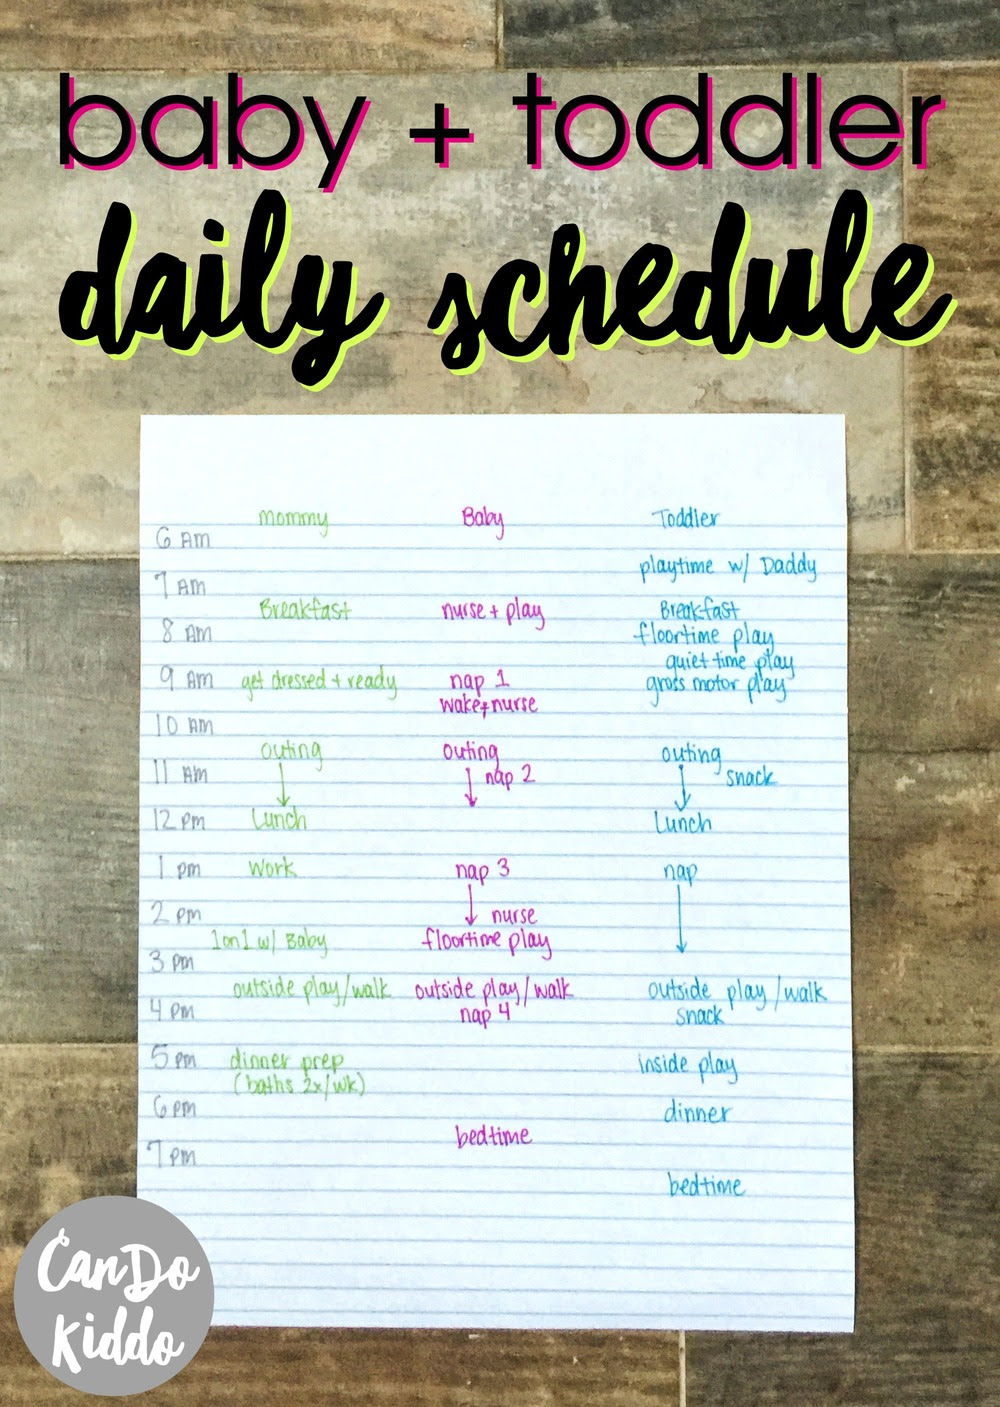 My Stay At Home Infant and Toddler Schedule — CanDo Kiddo